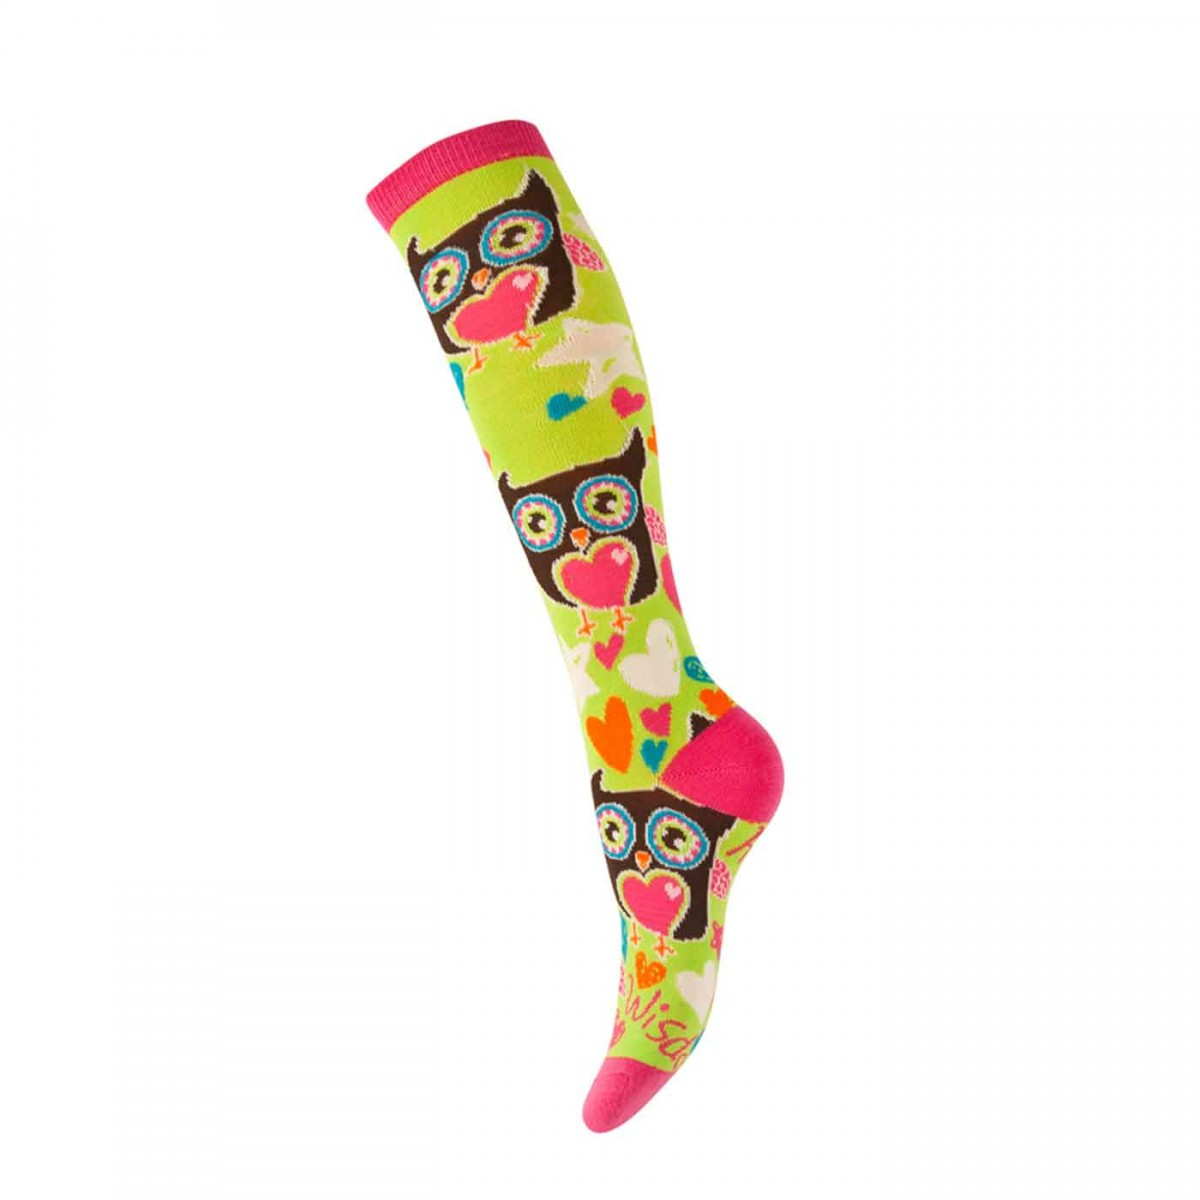 Glowsocks with owl pattern